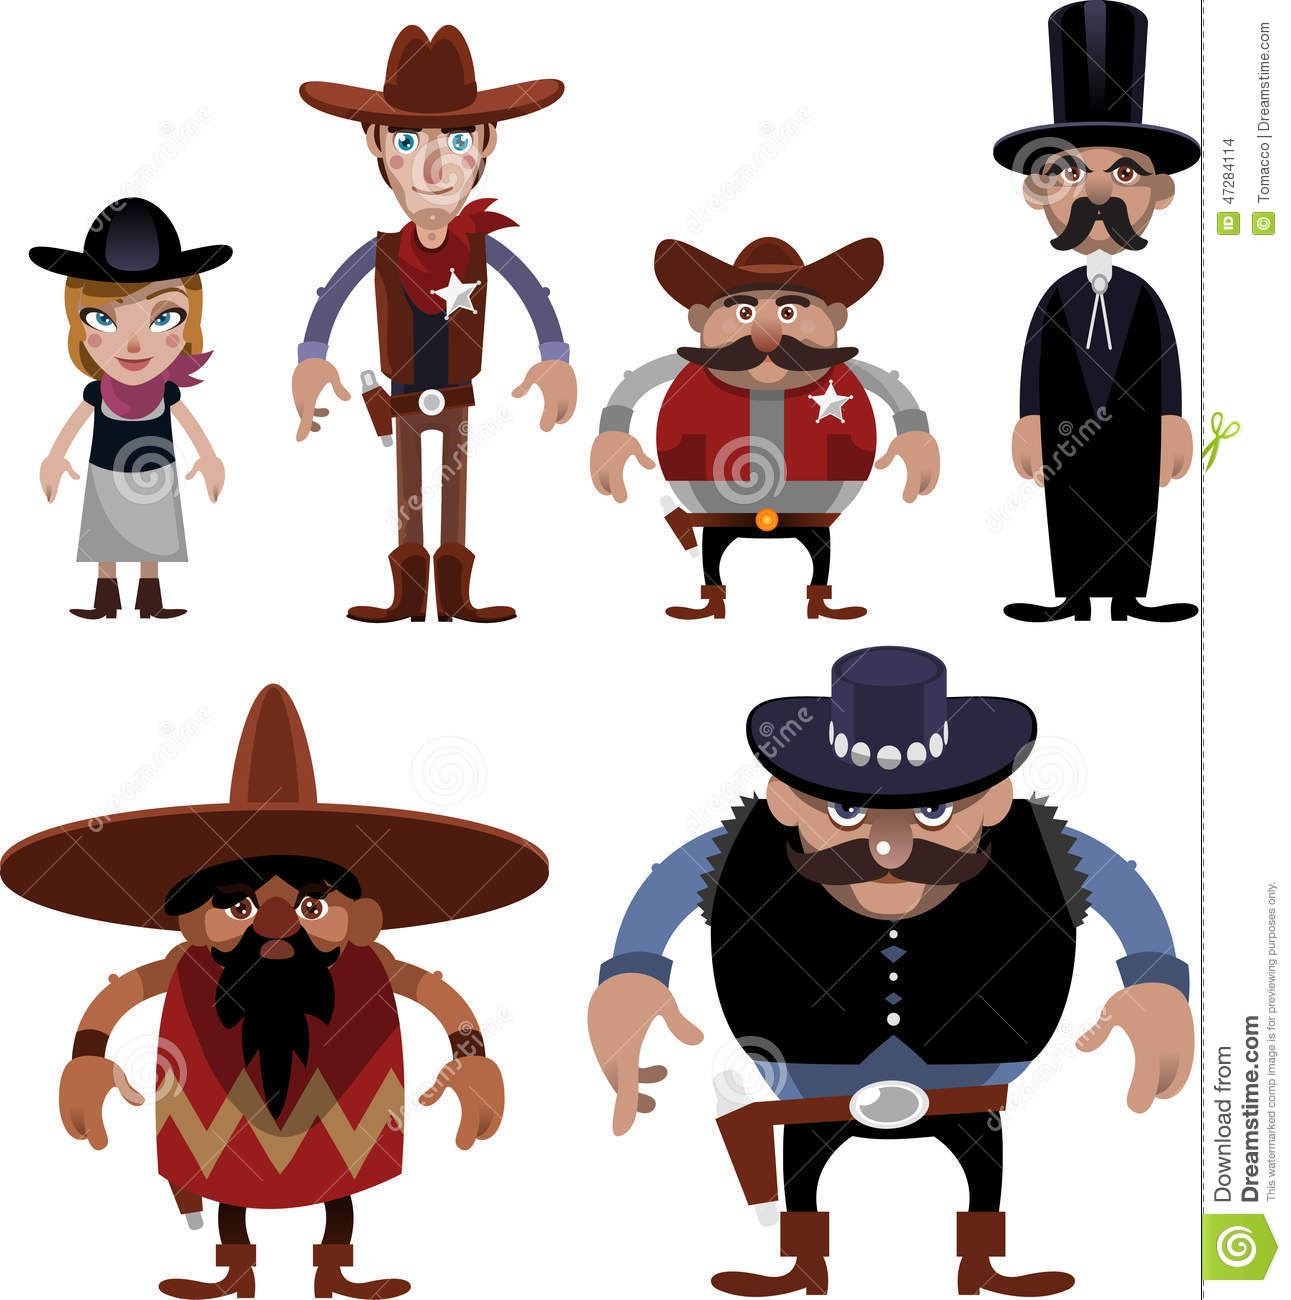 clipart gratuit far west - photo #20